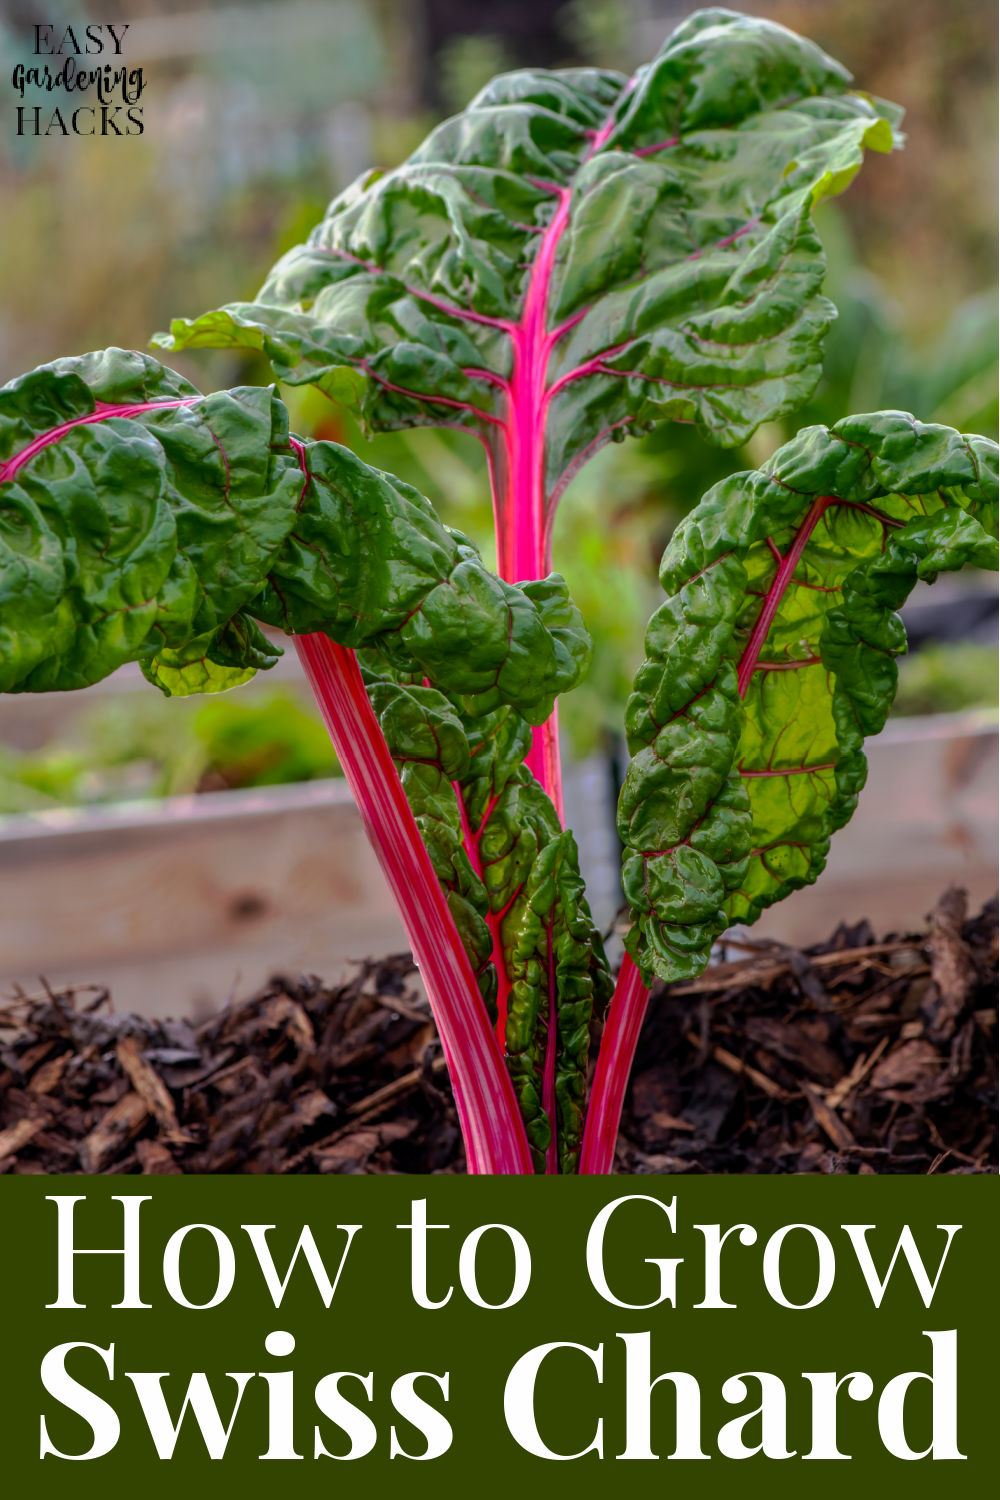 Swiss chard plant growing in a raised garden bed.